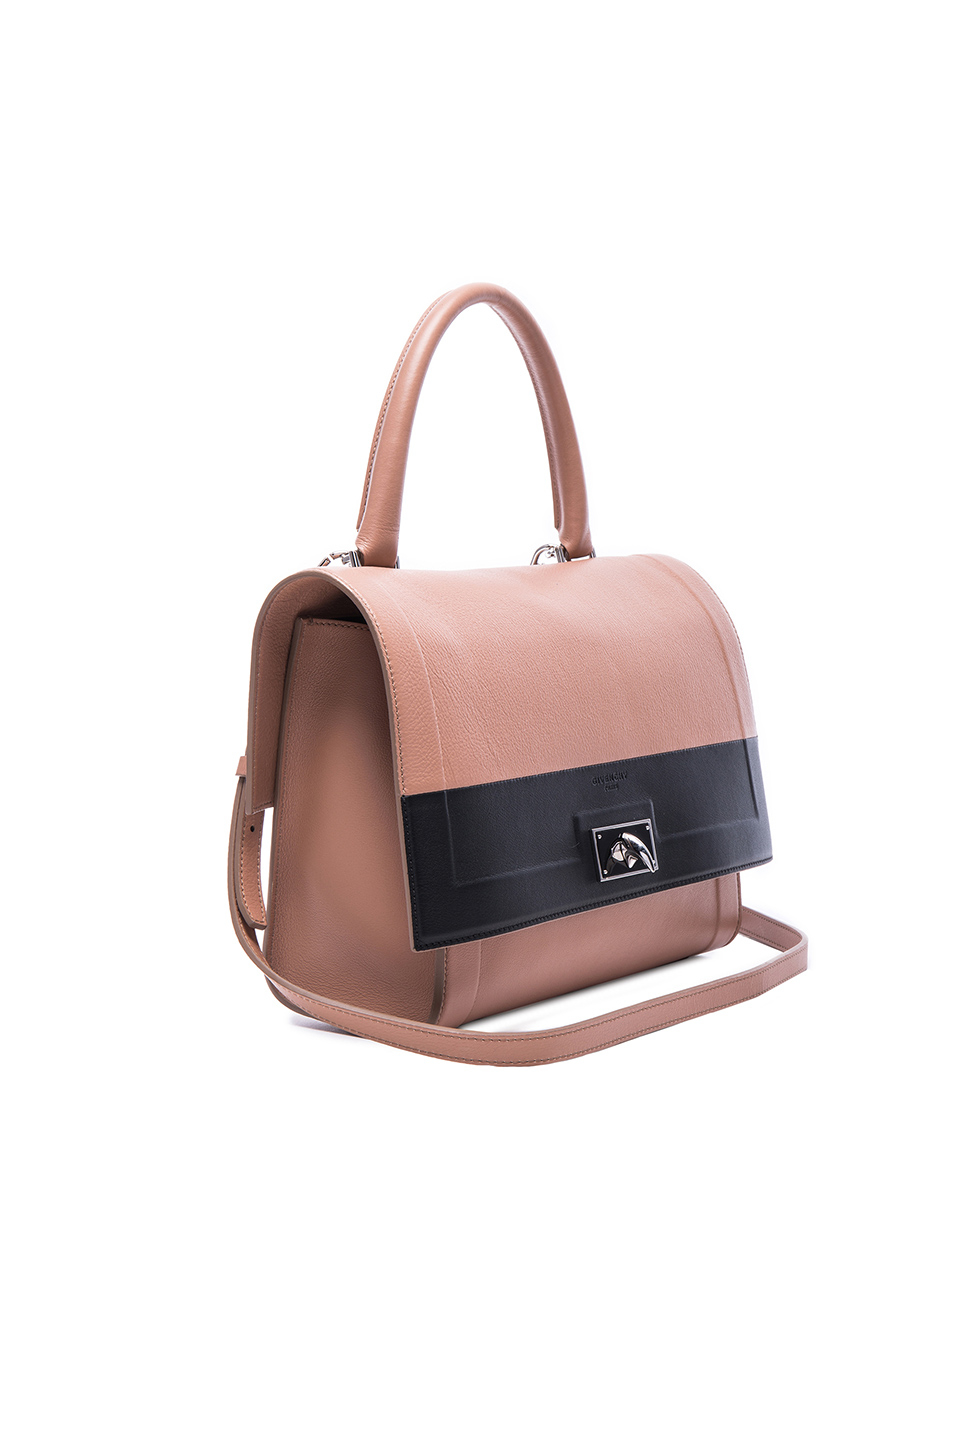 givenchy sale handbags - Givenchy Small Contrast Band Leather Shark Bag in  Pink (Neutrals . b63990ceab04f